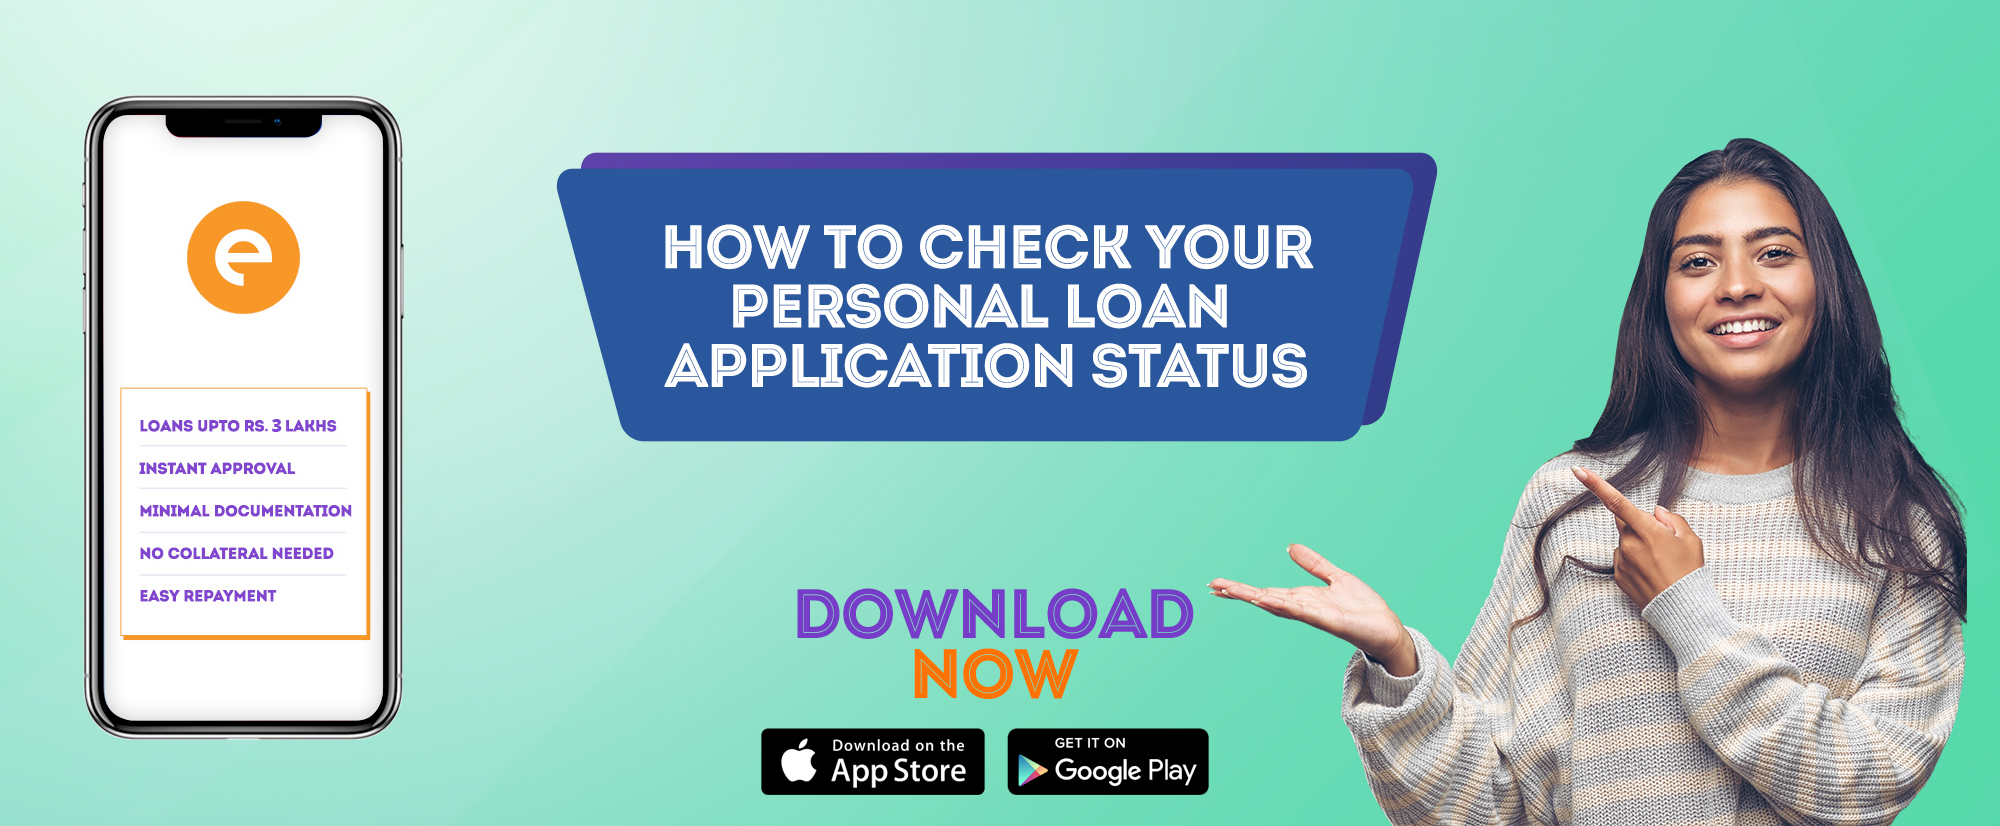 How To Check Your Personal Loan Application Status Cashe App